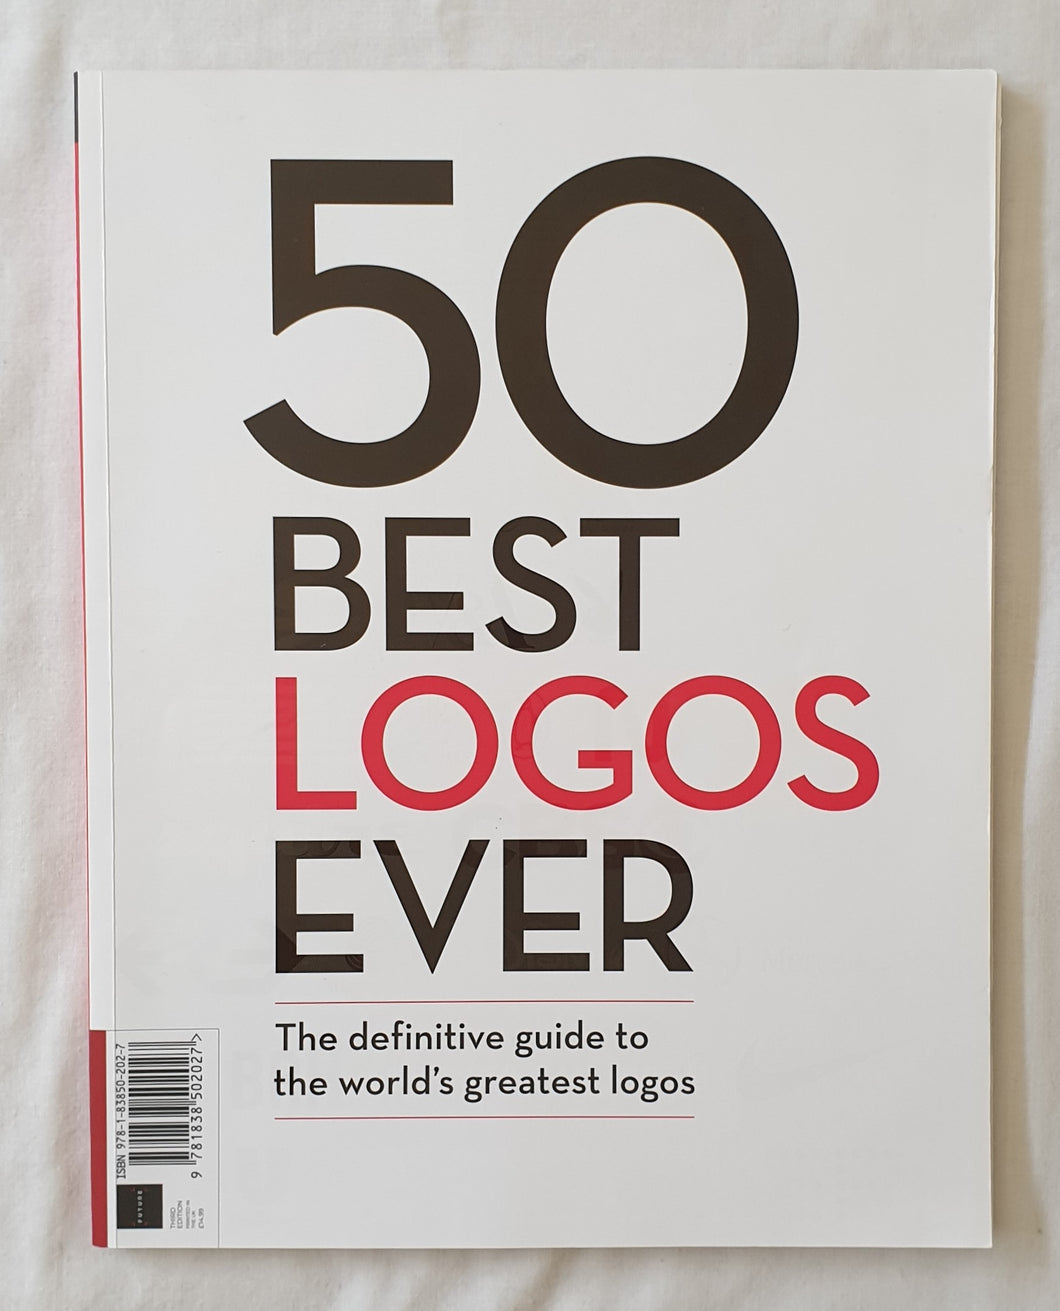 50 Best Logos Ever by Future PLC